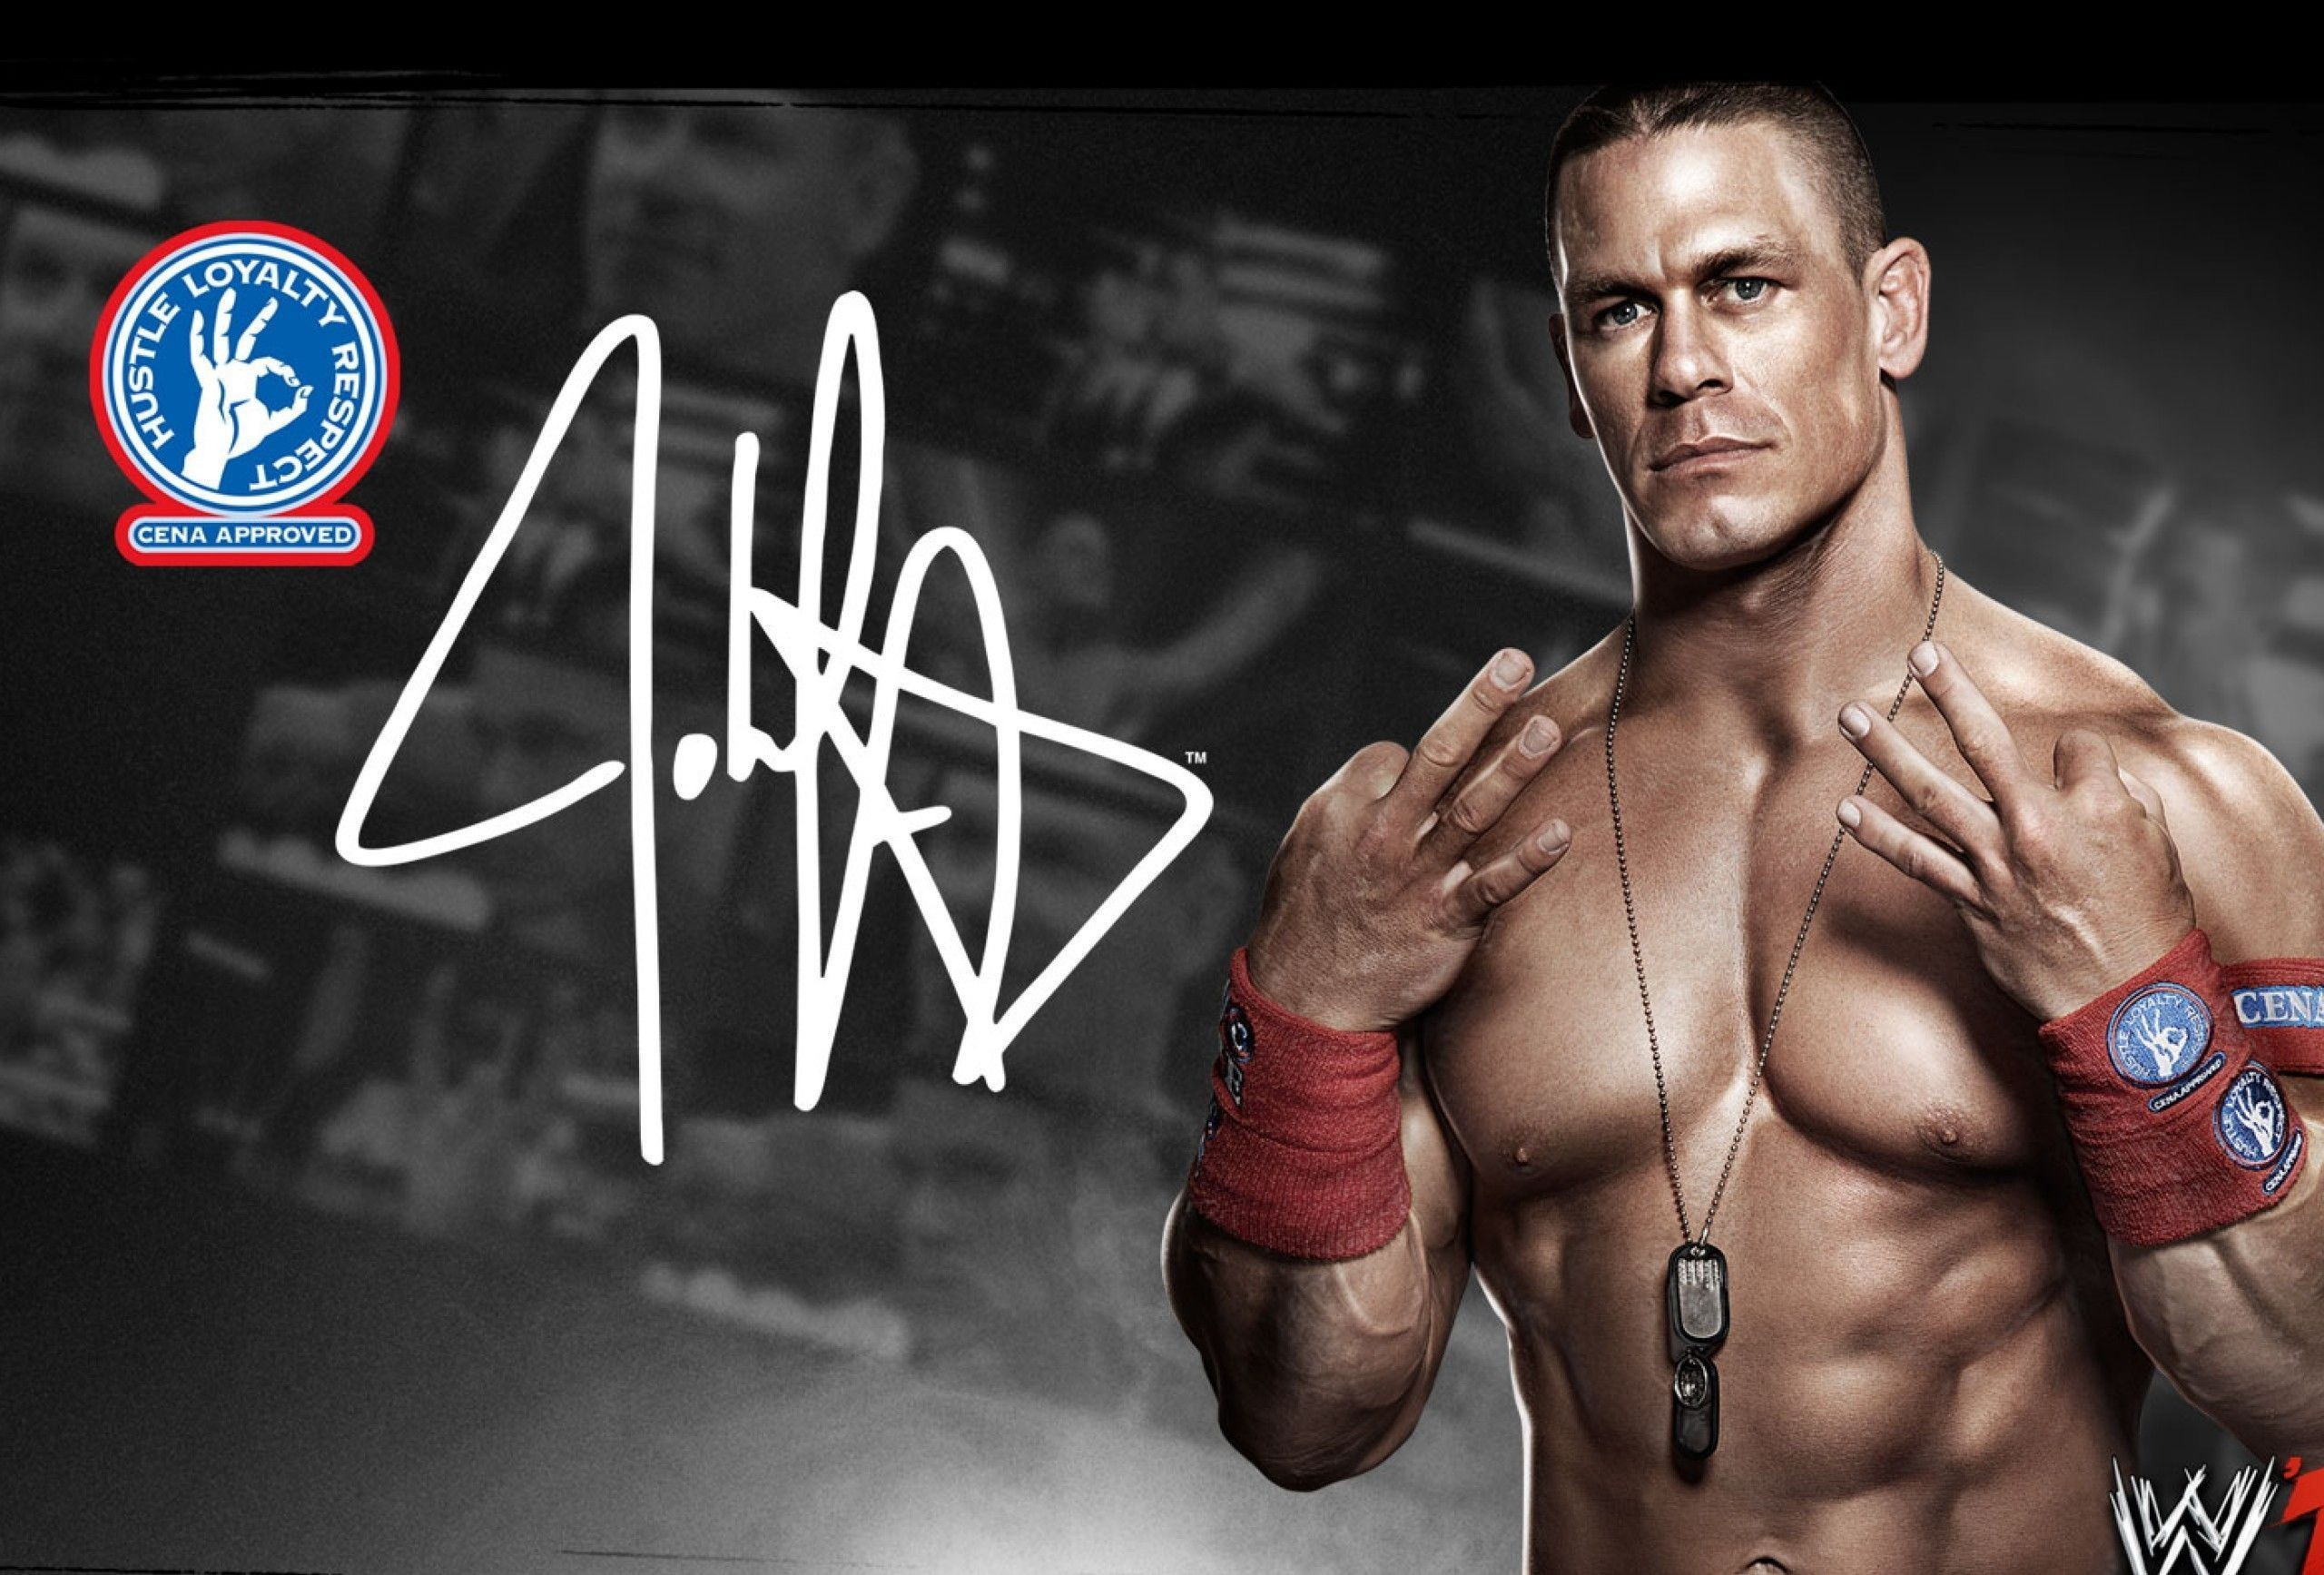 2560x1735 WWE John Cena hd wallpaper | WWE | Pinterest | John cena